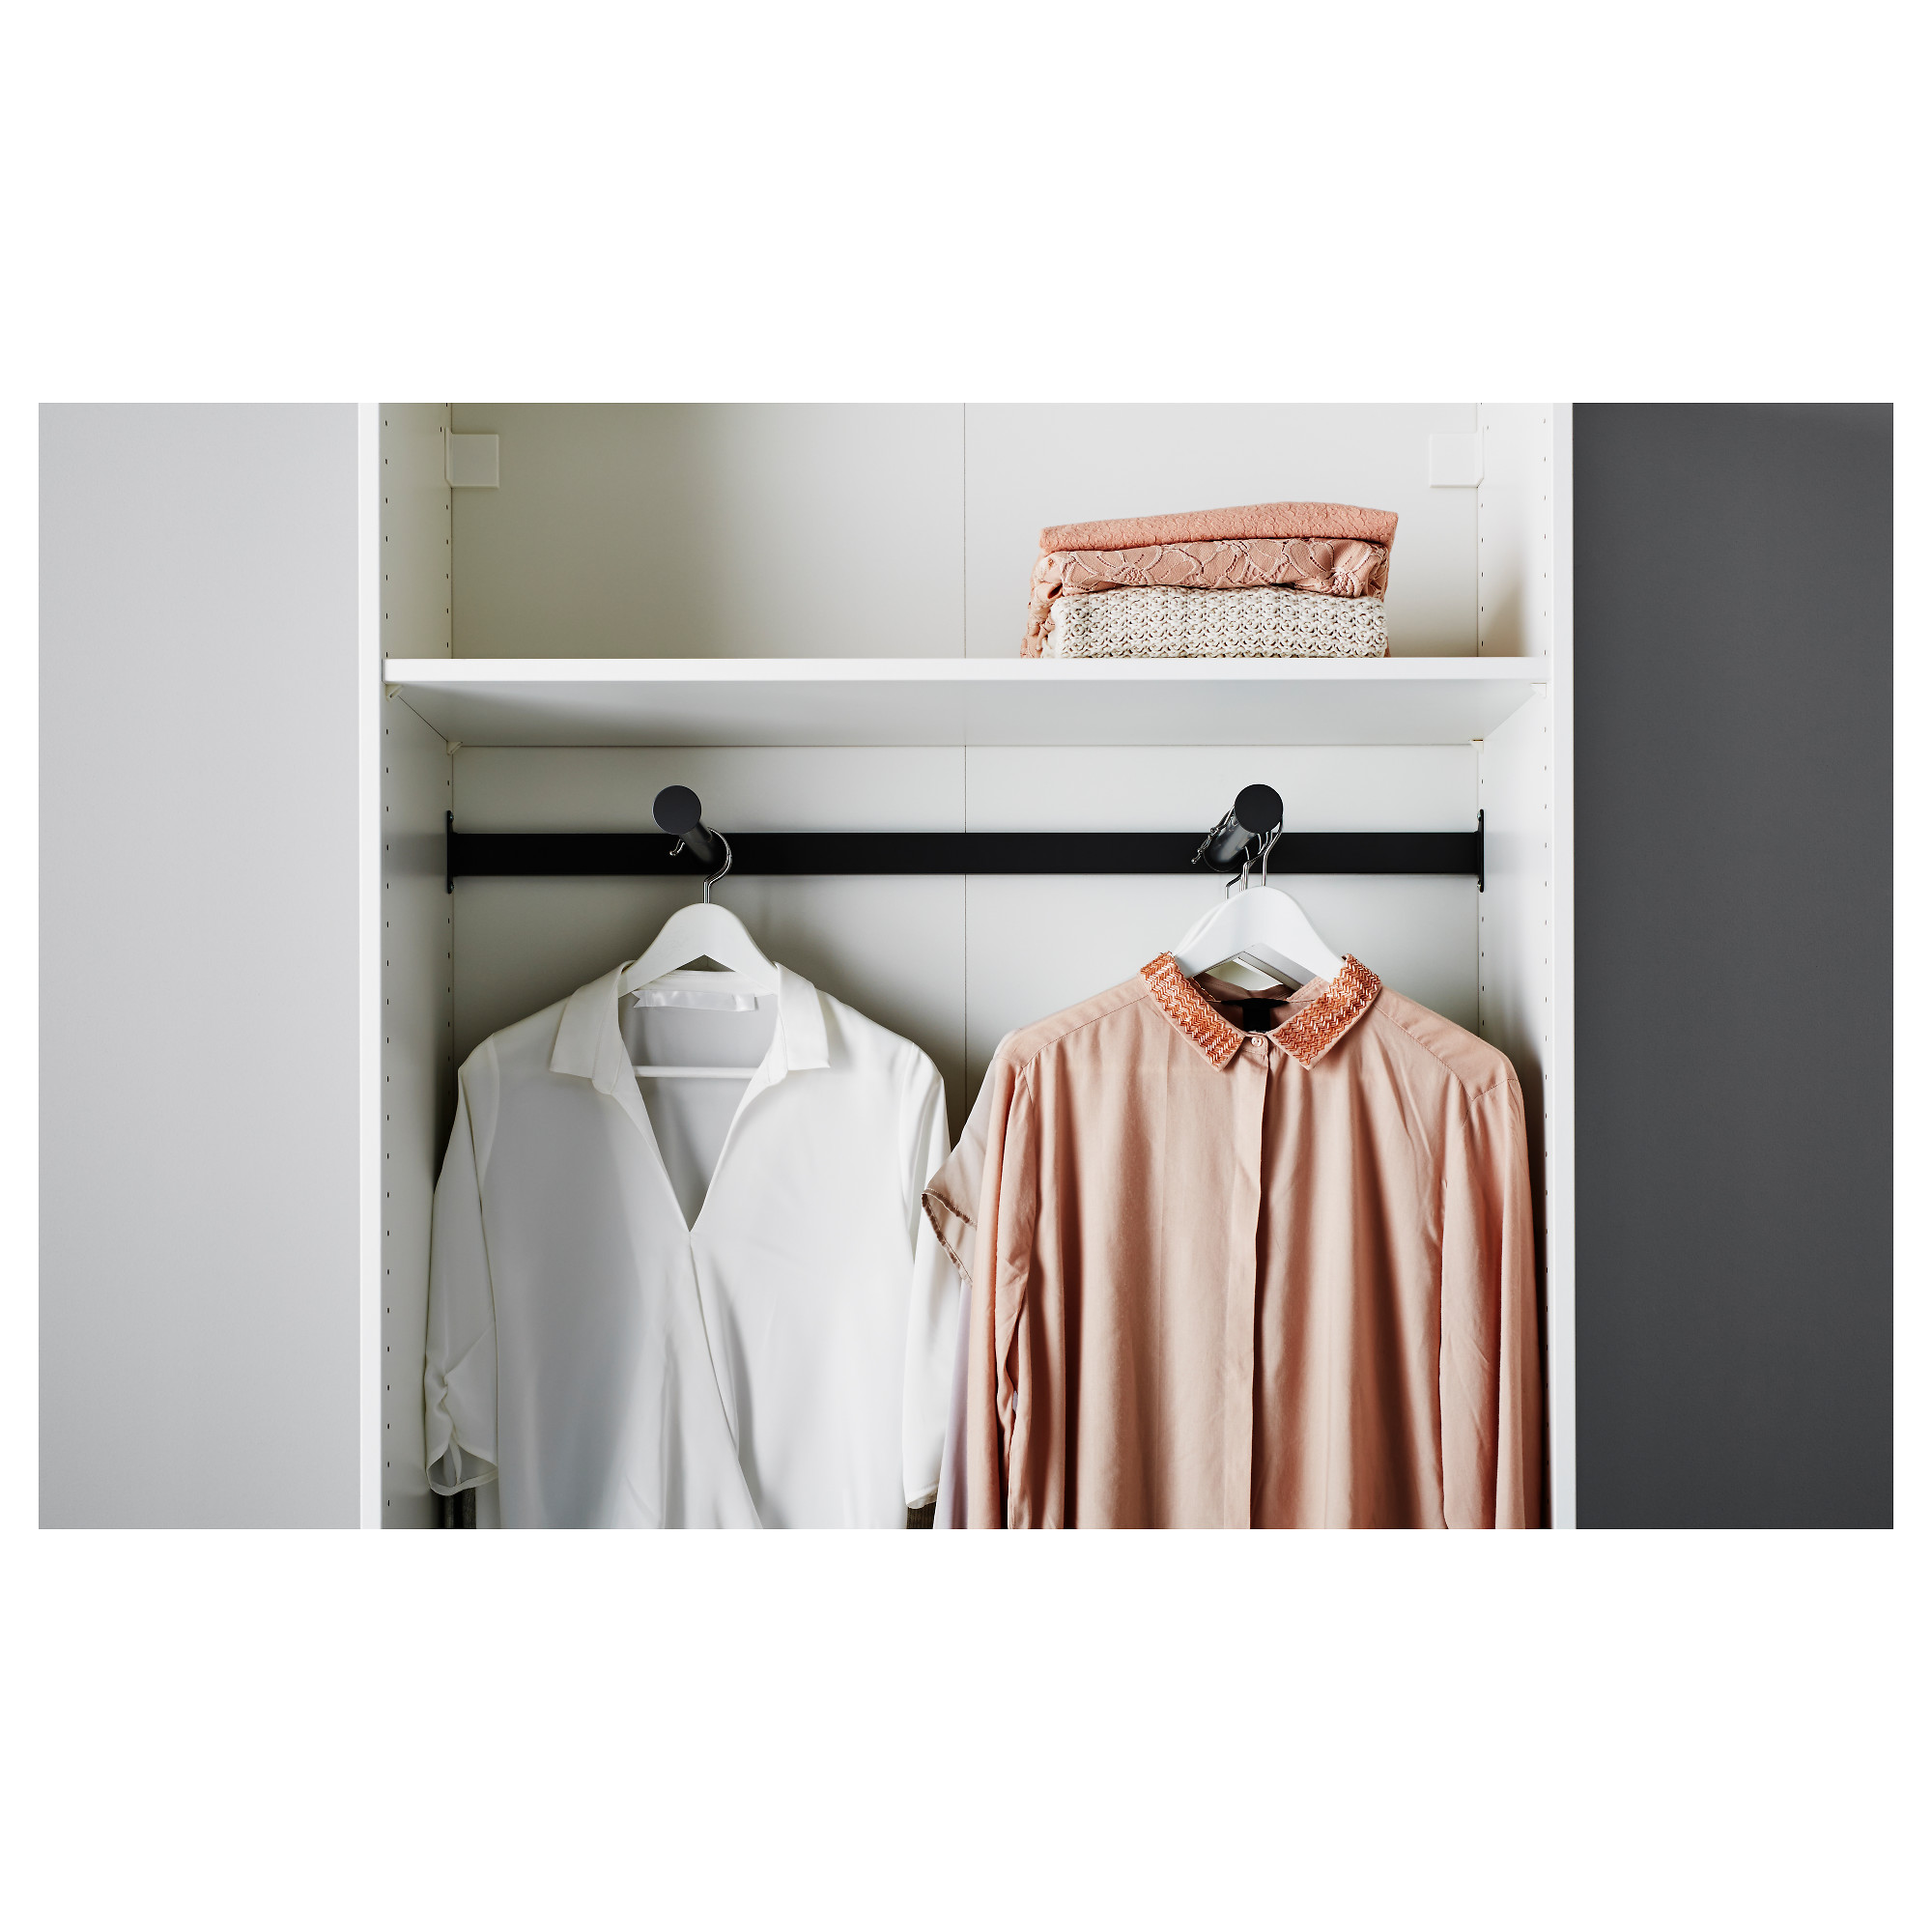 Komplement pull out clothes rail 100x35 cm ikea sisterspd